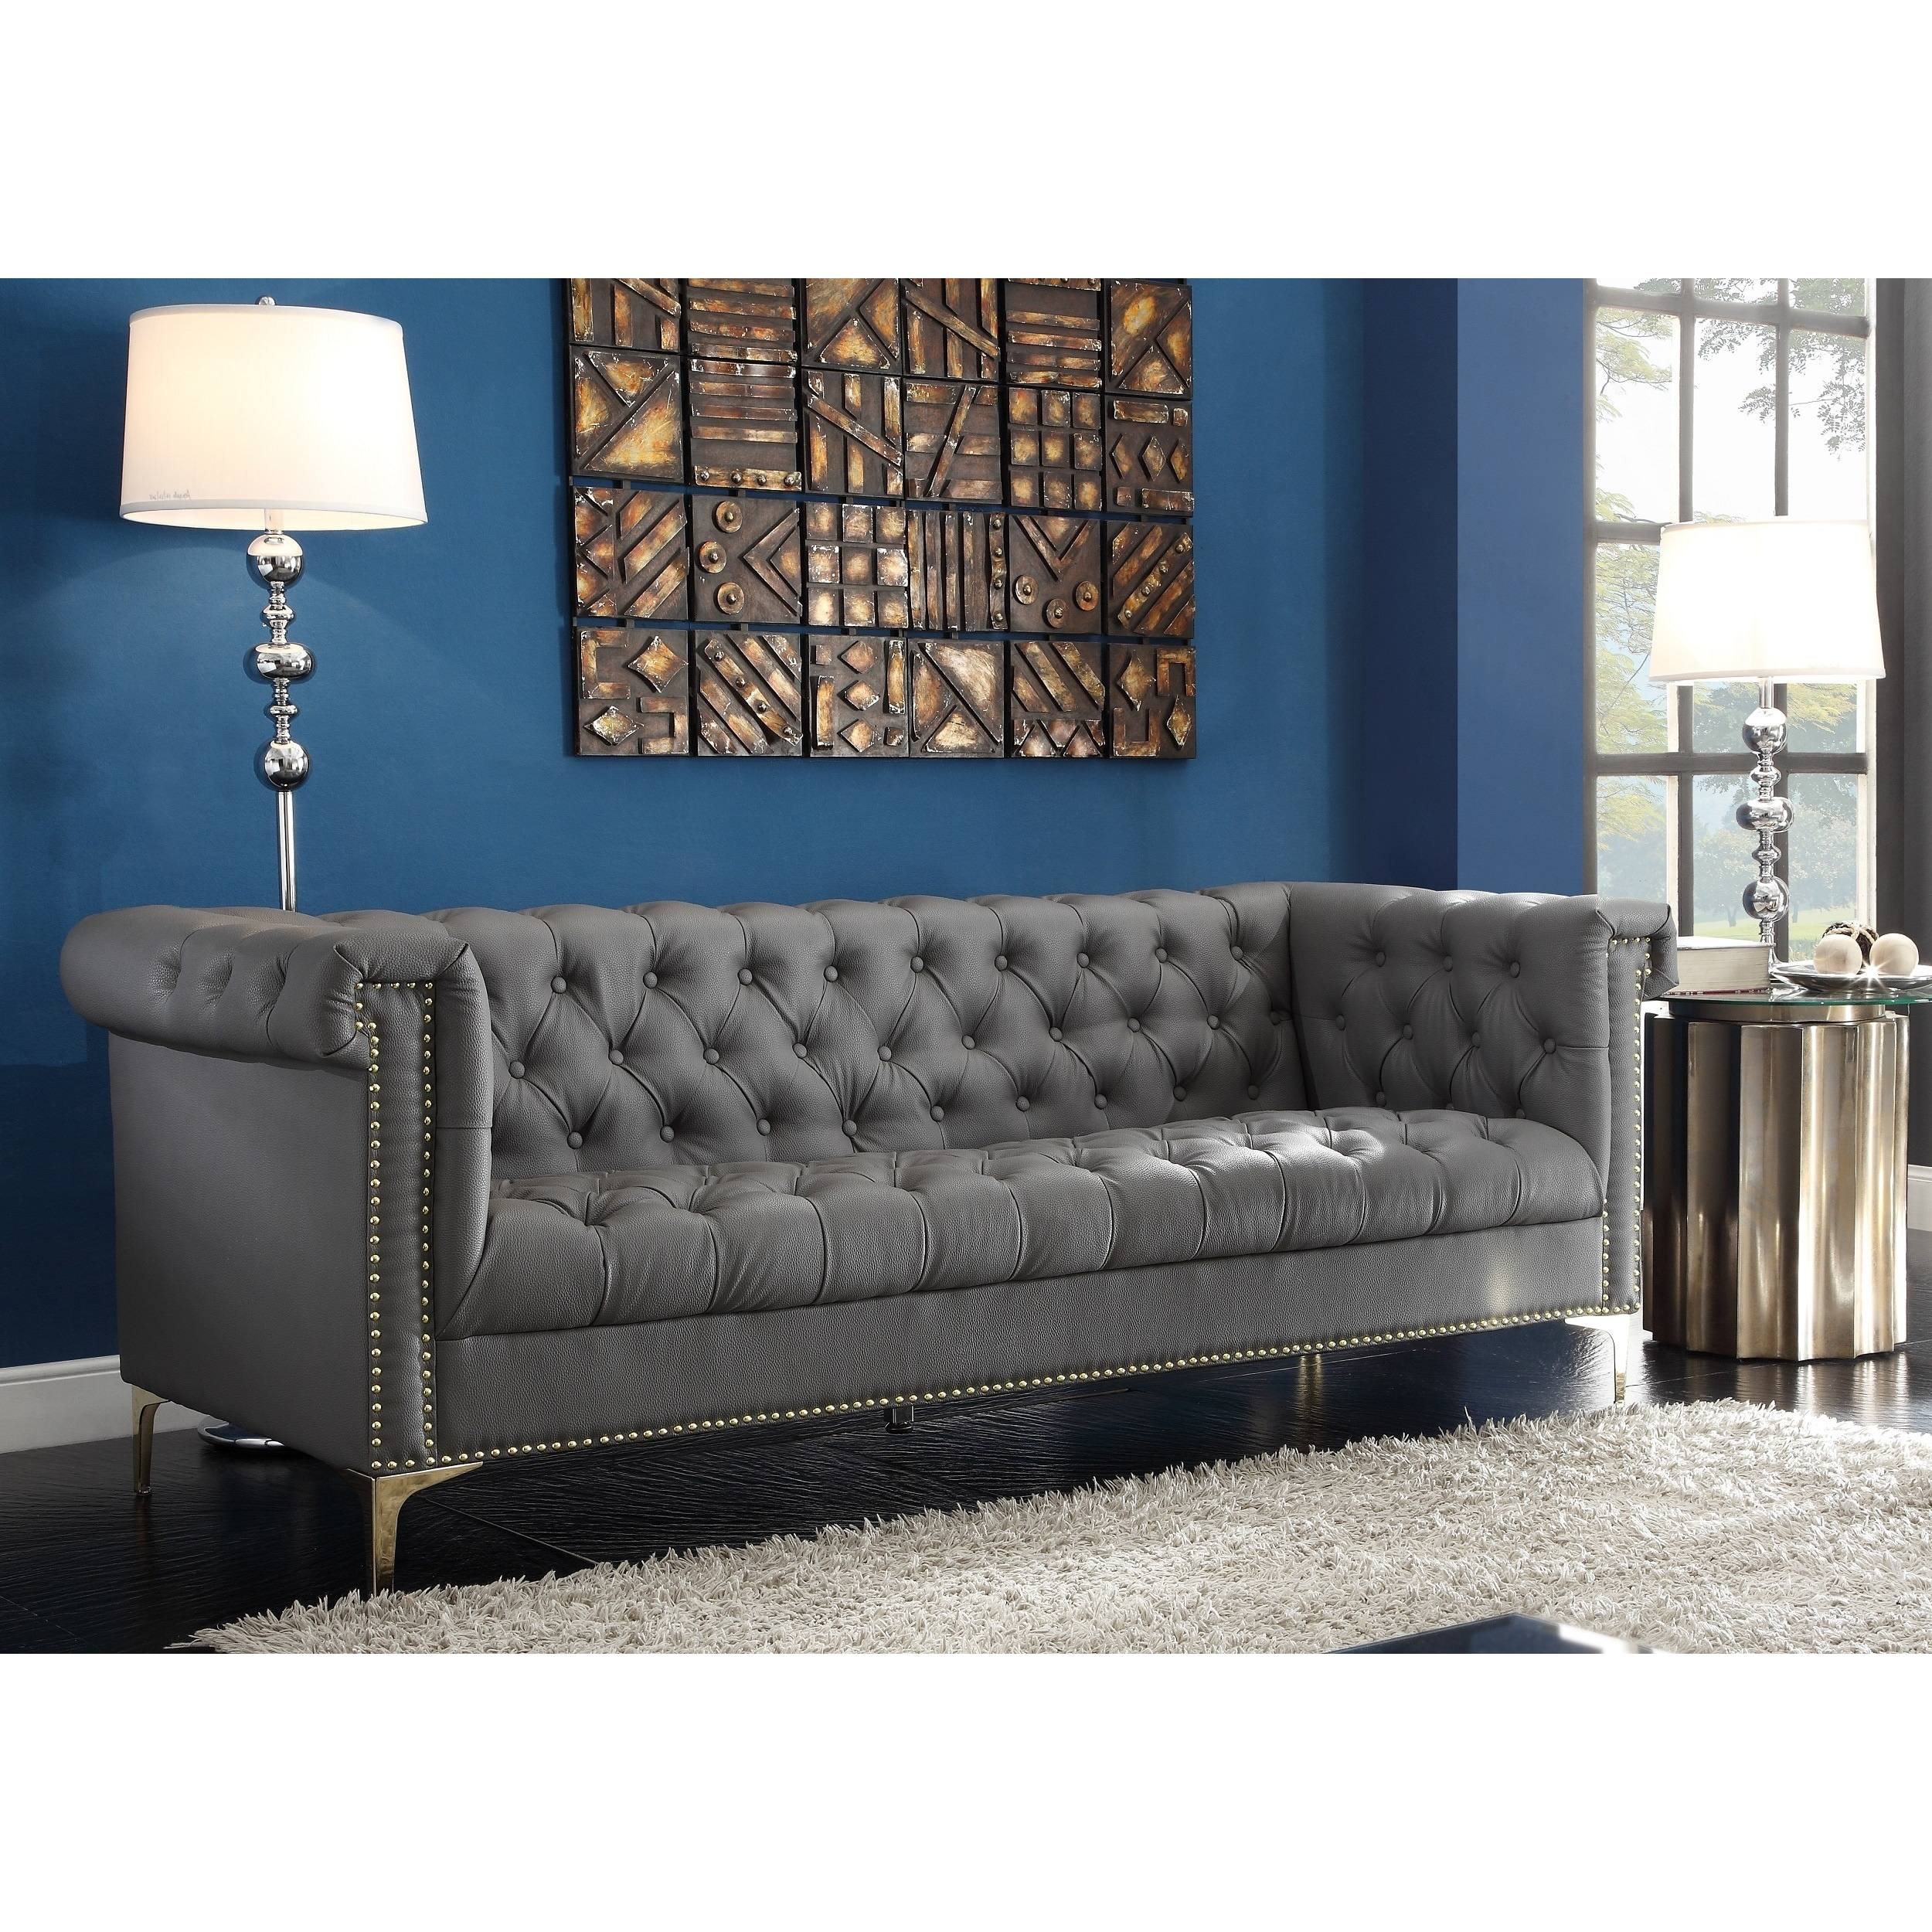 Sofas Retro Buy Vintage Sofas Couches Online At Overstock Our Best Living